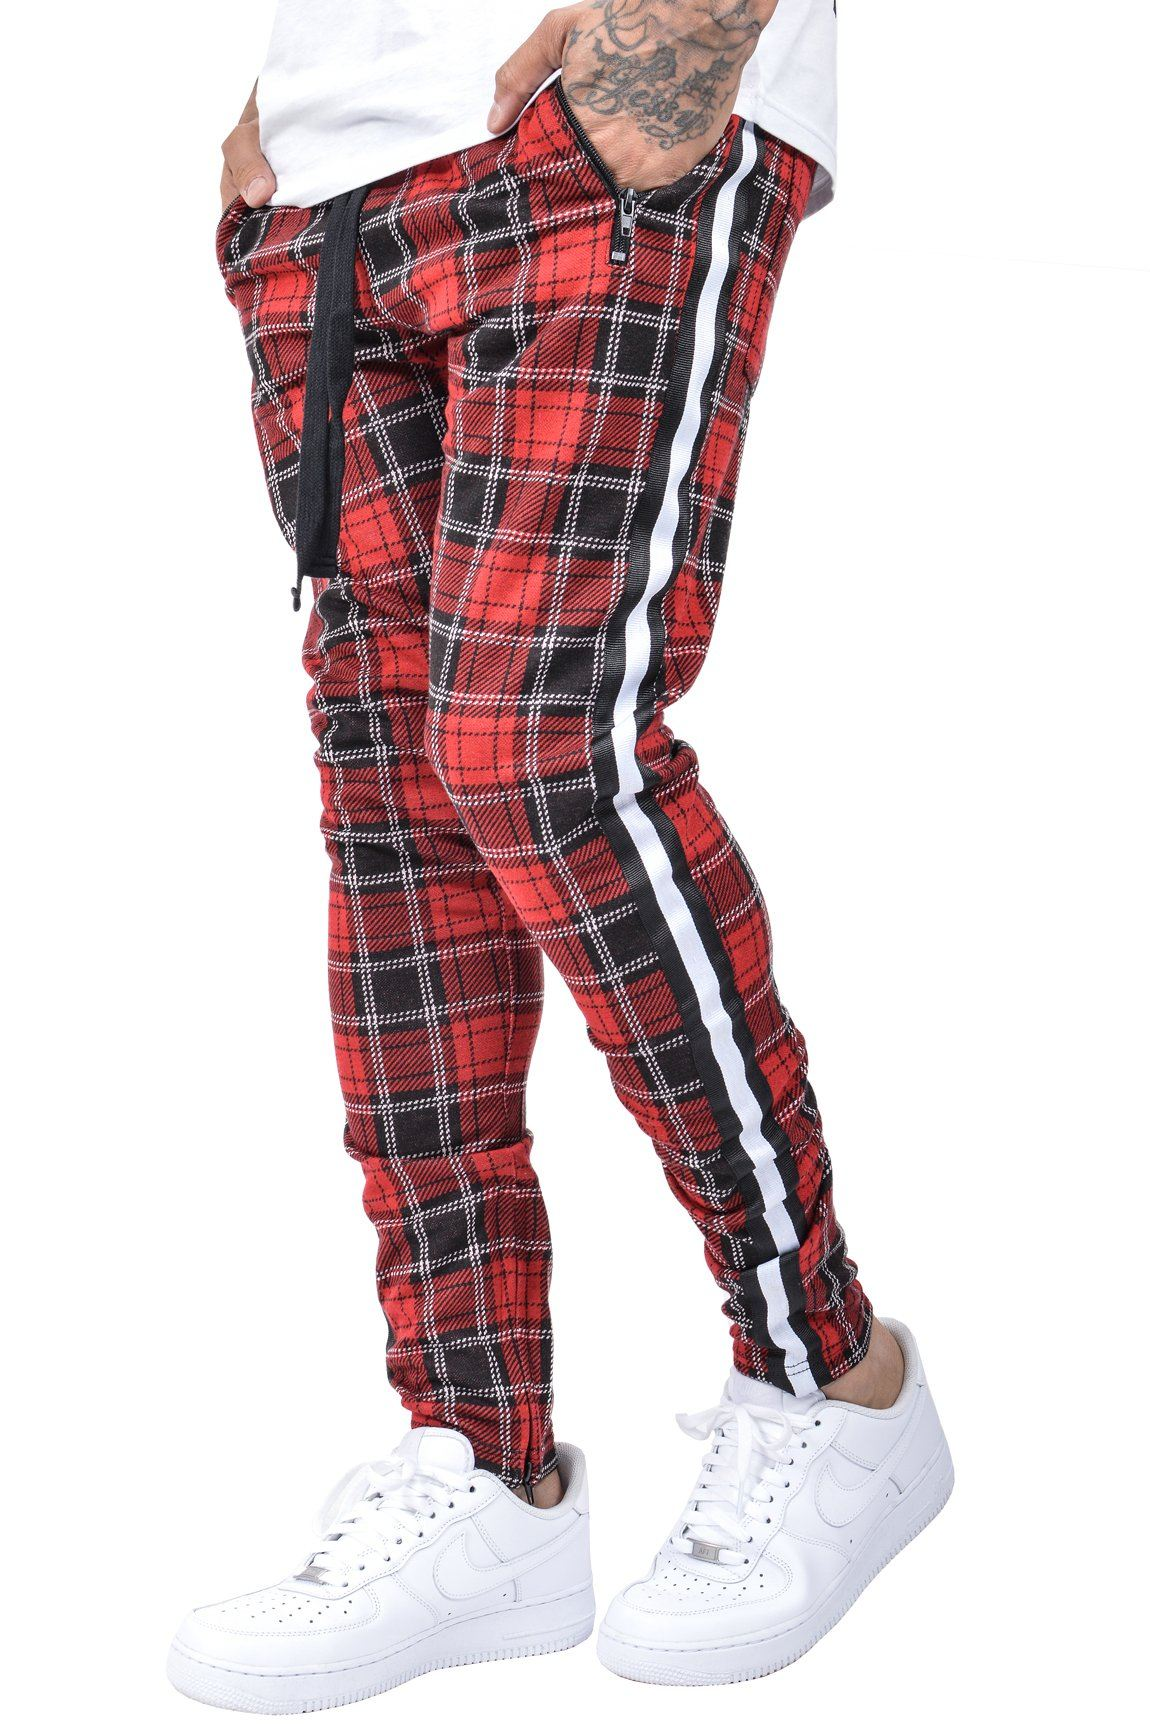 Benjamin Stripe Pants Checkered Red - PEGADOR - Dominate the Hype